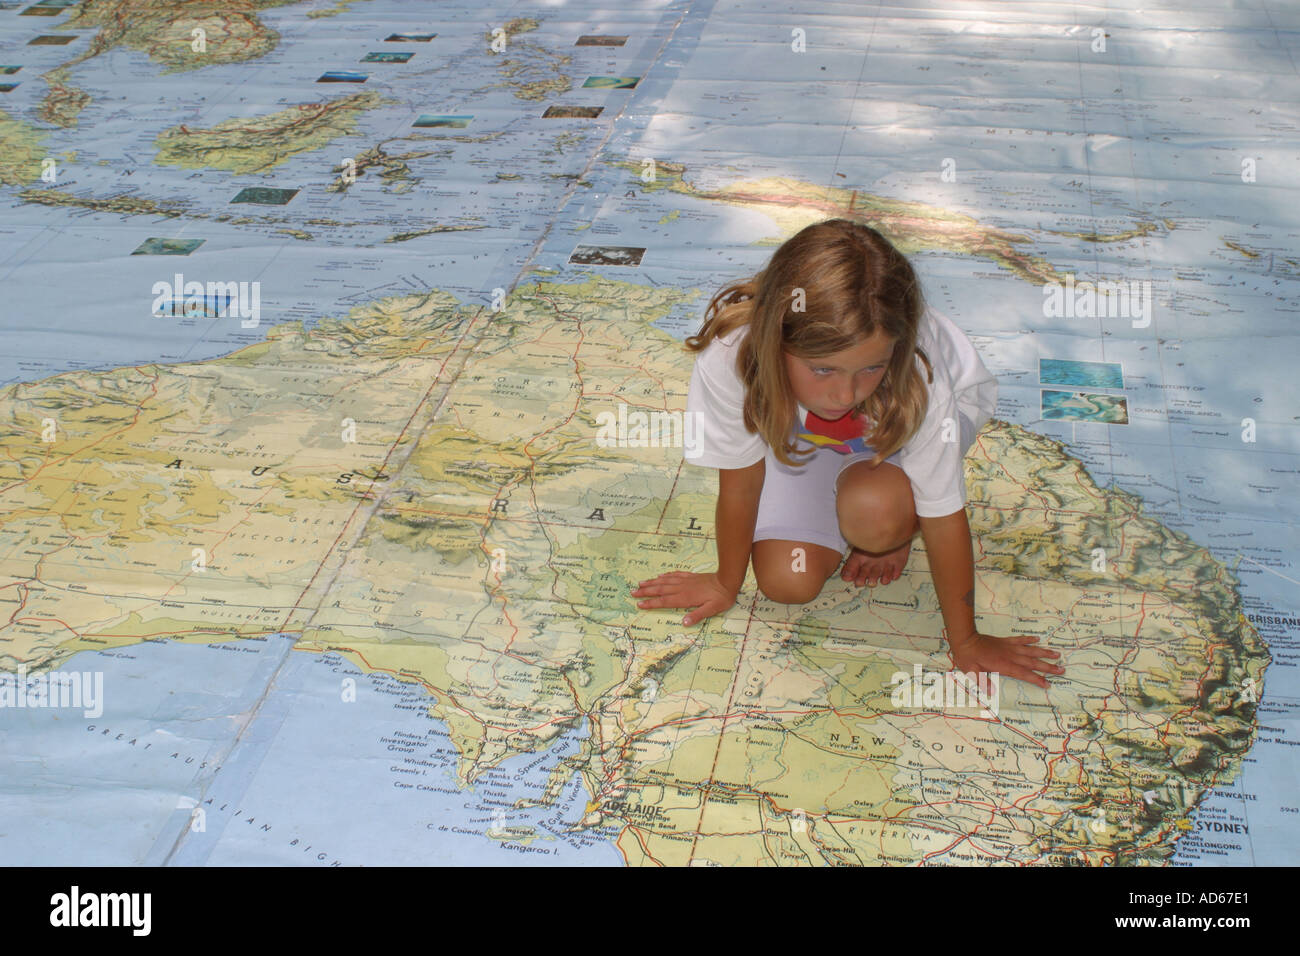 Young girl sitting on Australia part of a huge World map in an outdoor park - Stock Image